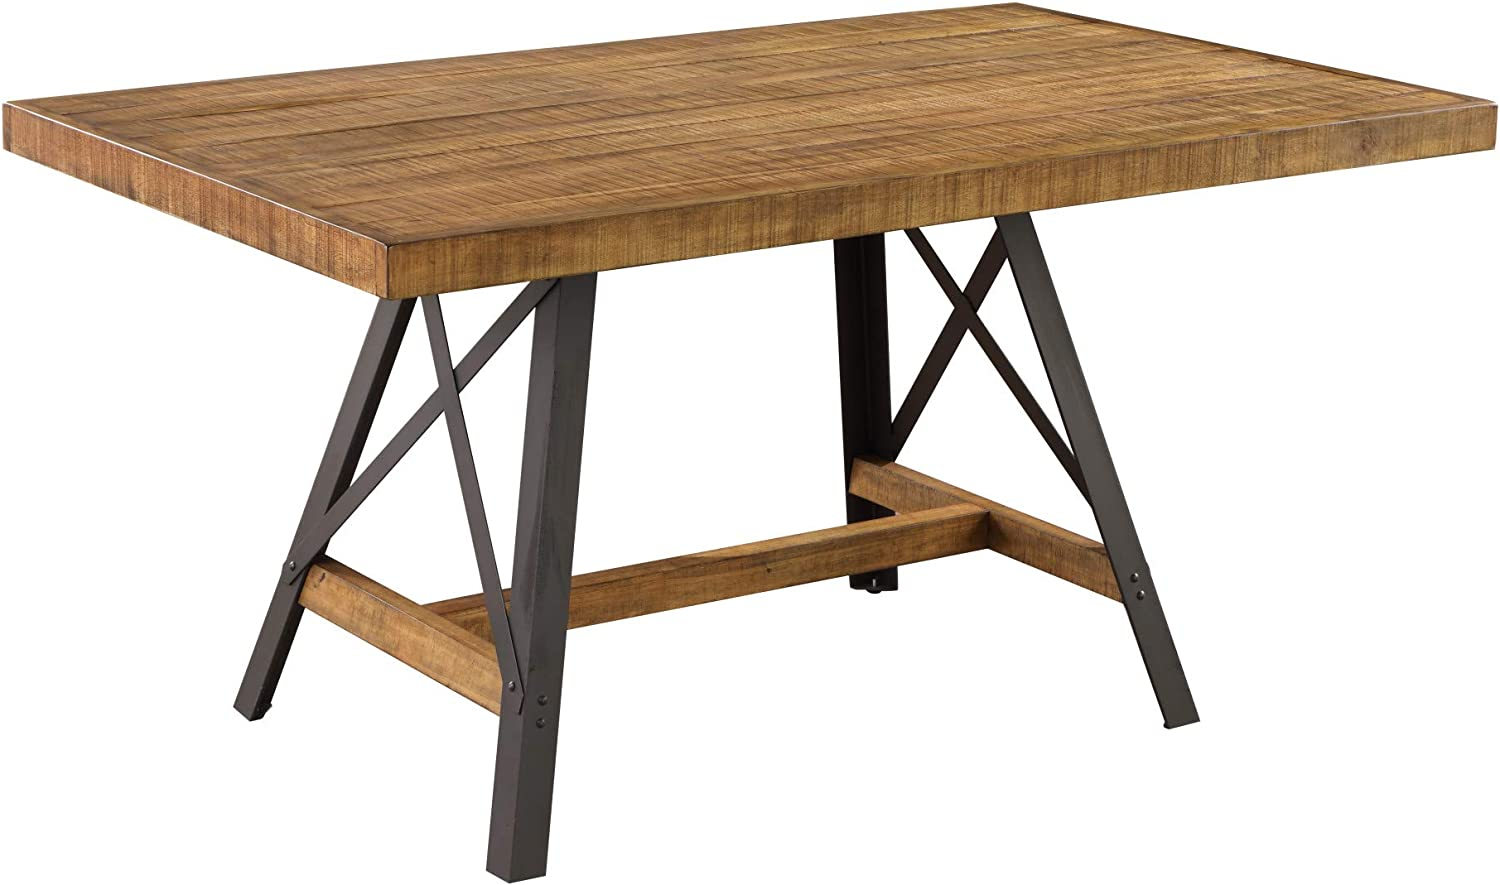 Joey 60 Dining Table in Gingersnap with Rustic Plank Top And Metal Base, by Artum Hill